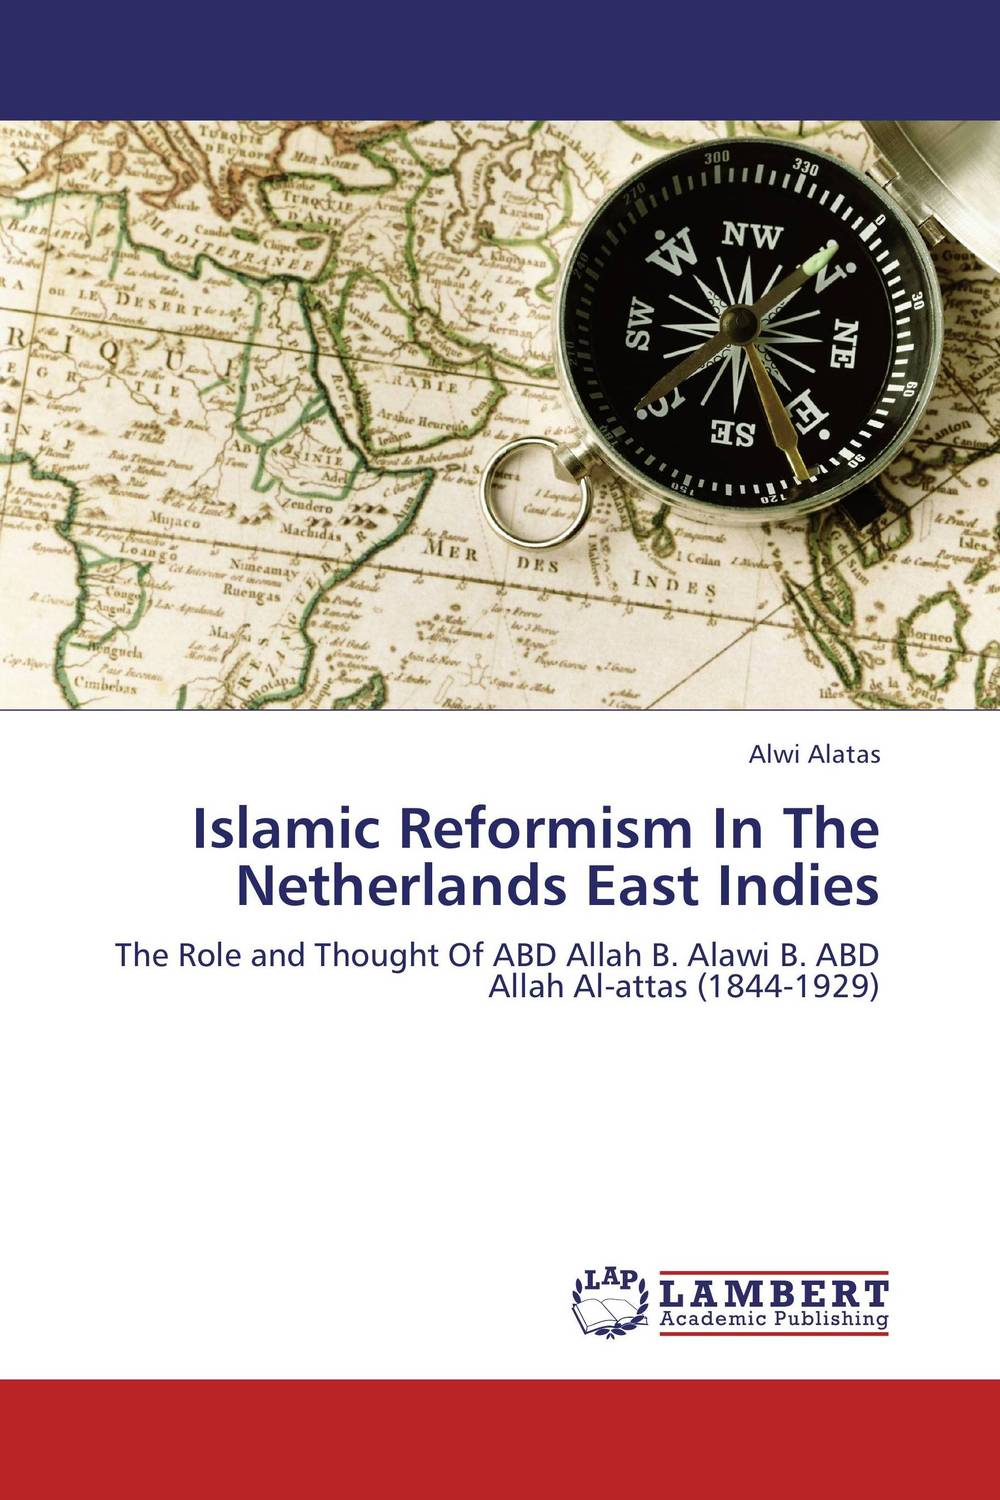 Islamic Reformism In The Netherlands East Indies south korea's role in building the east asian community